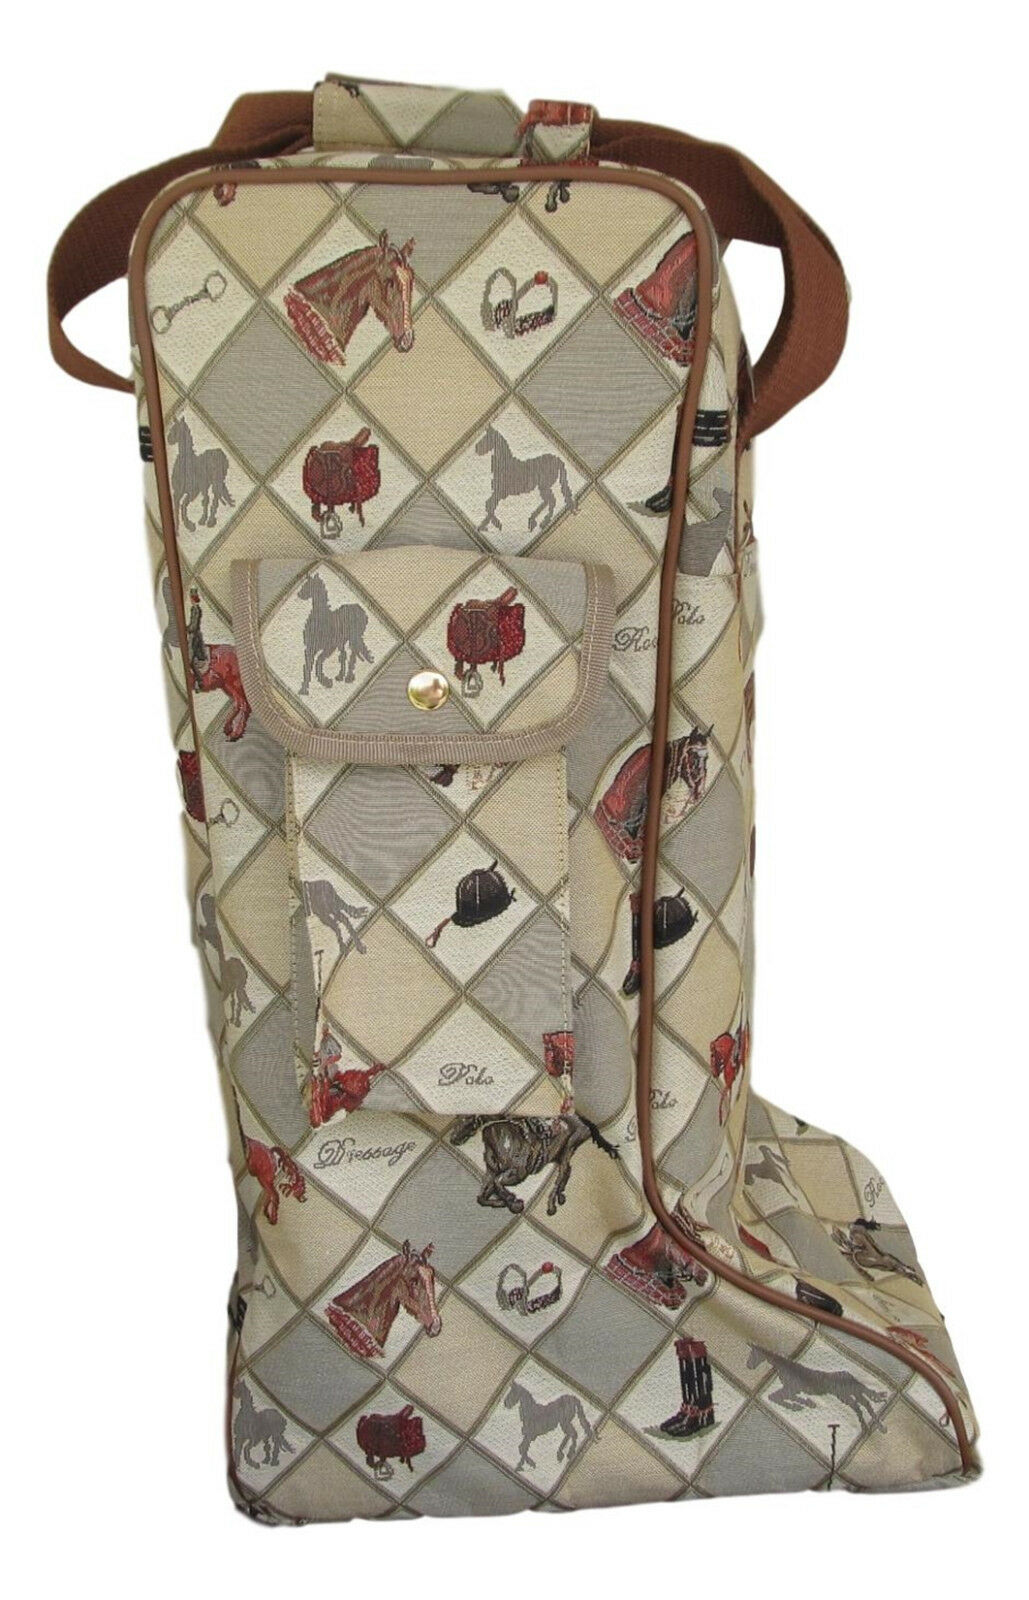 Tapestry Equestrian Sport Horse Riding Boot Storage Bag